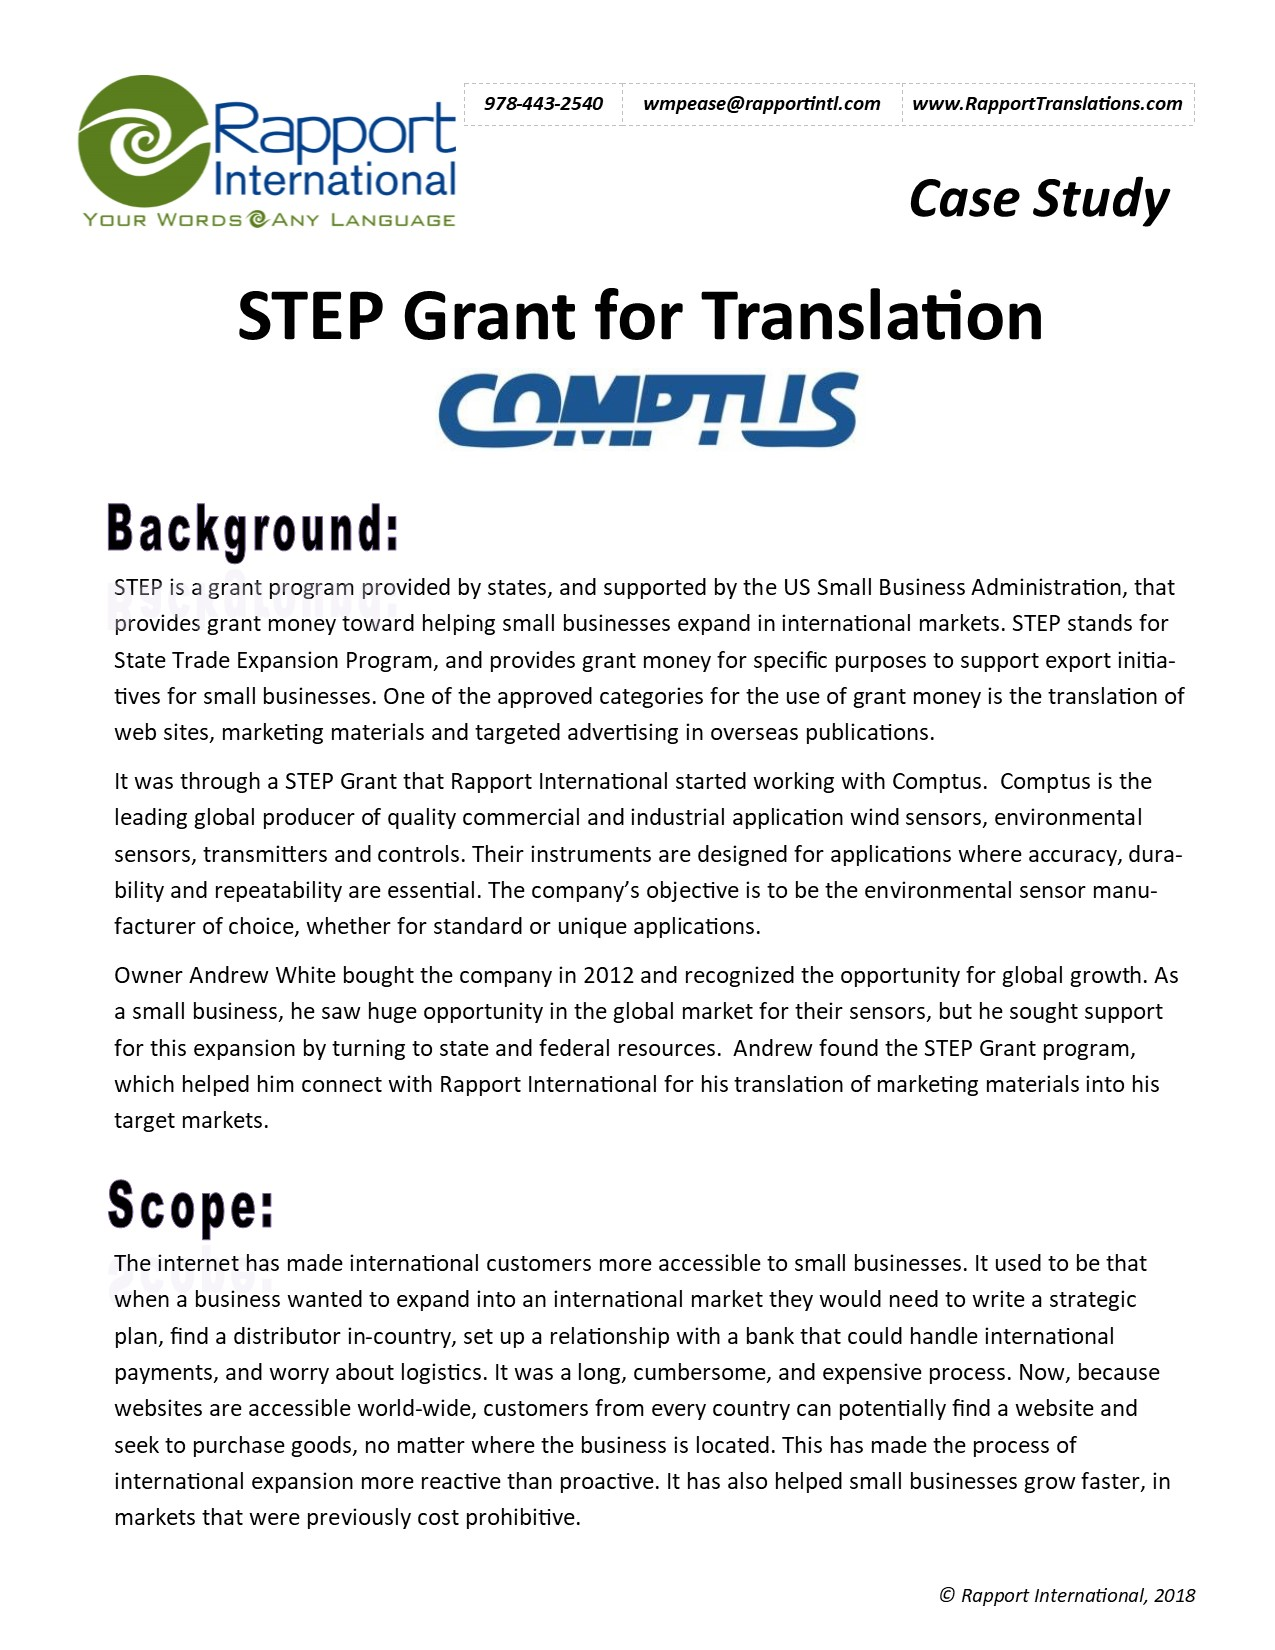 STEP Grant for Translation - Comptus Case Study Cover Photo